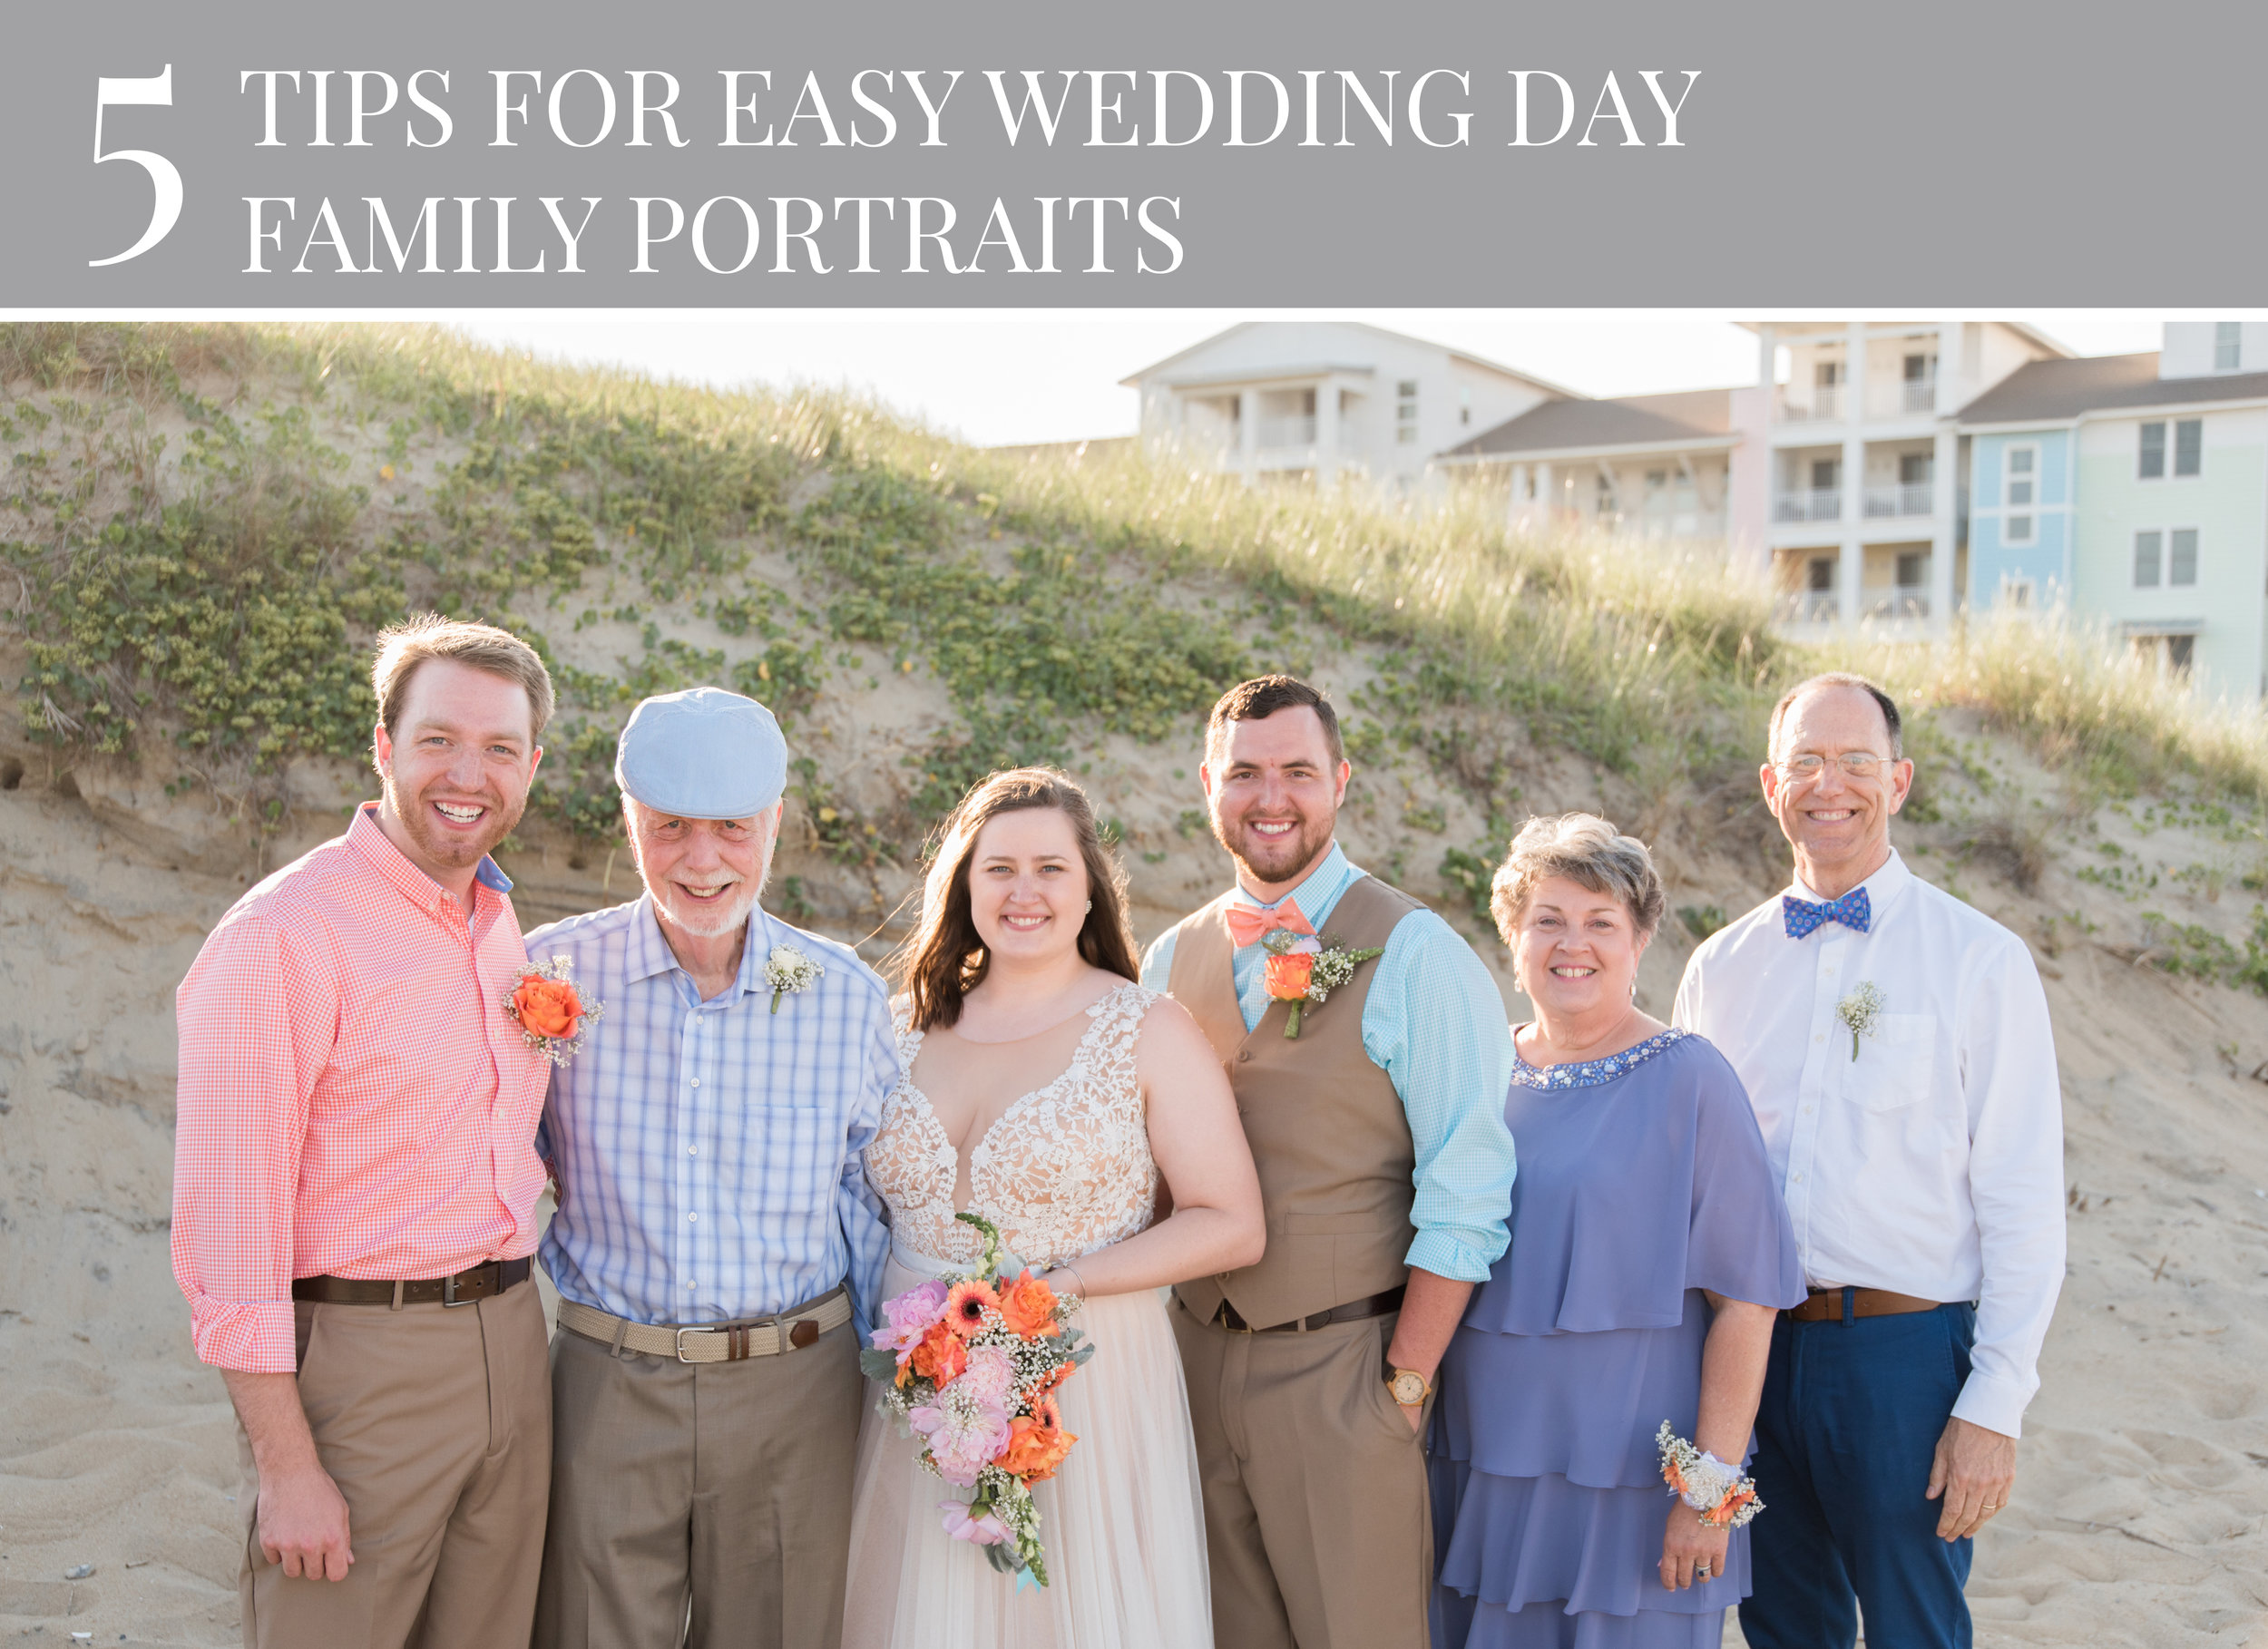 Family Portraits Tips on the Wedding Day.jpg